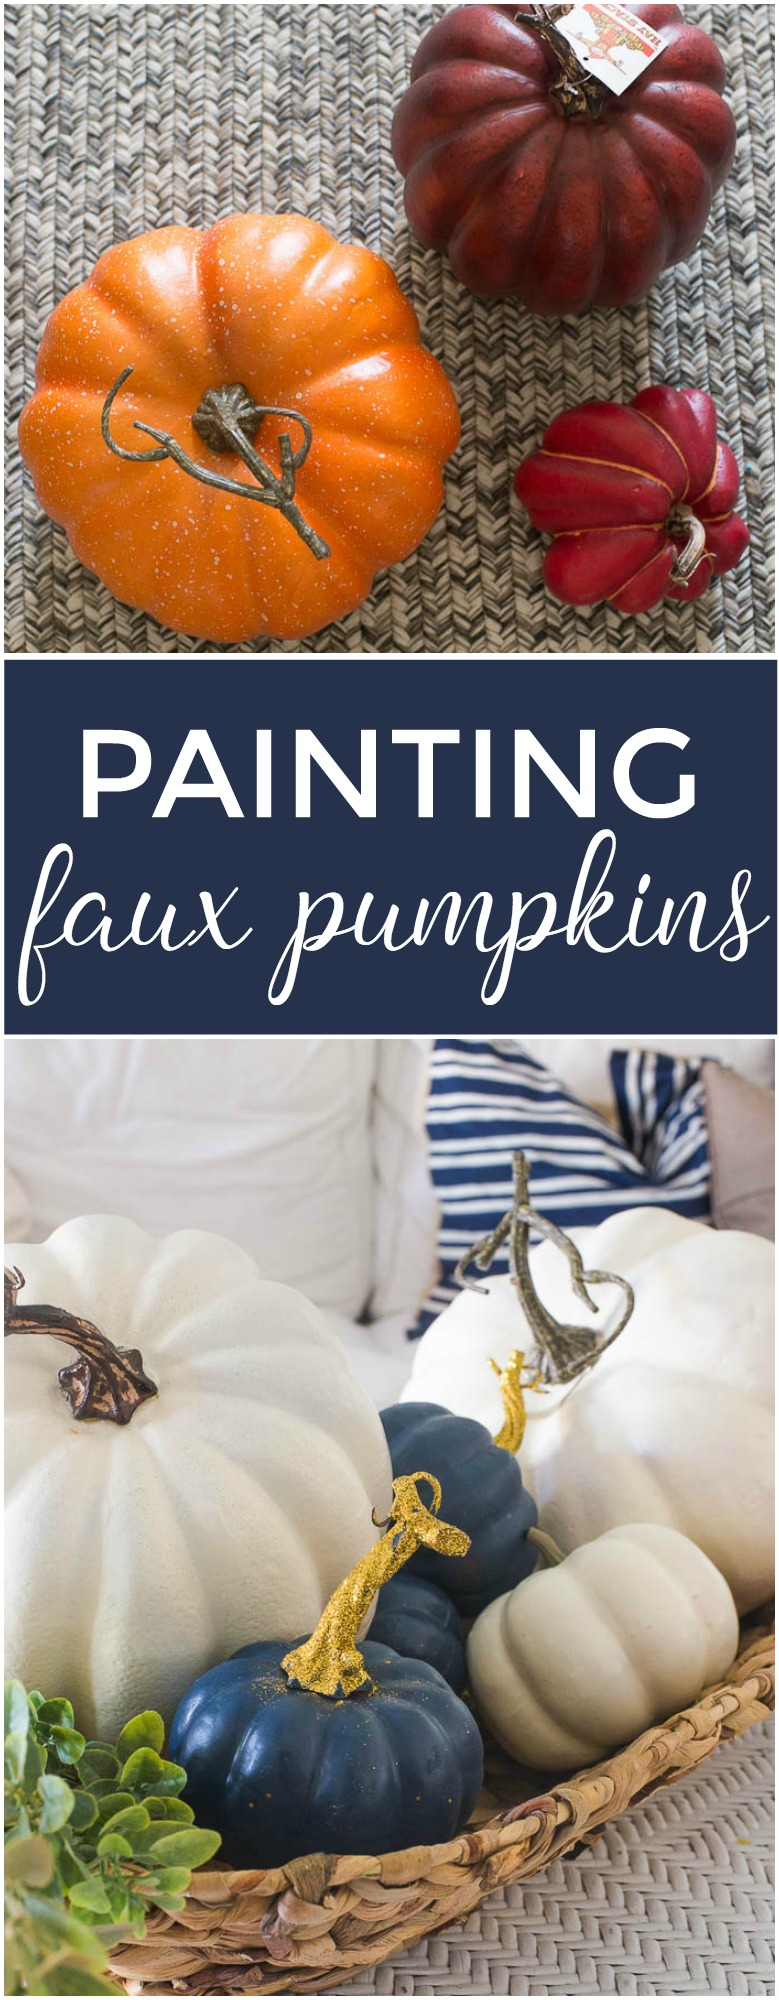 """If you love pretty white pumpkins, painting ugly faux pumpkins will save you a bundle on your fall decor!"